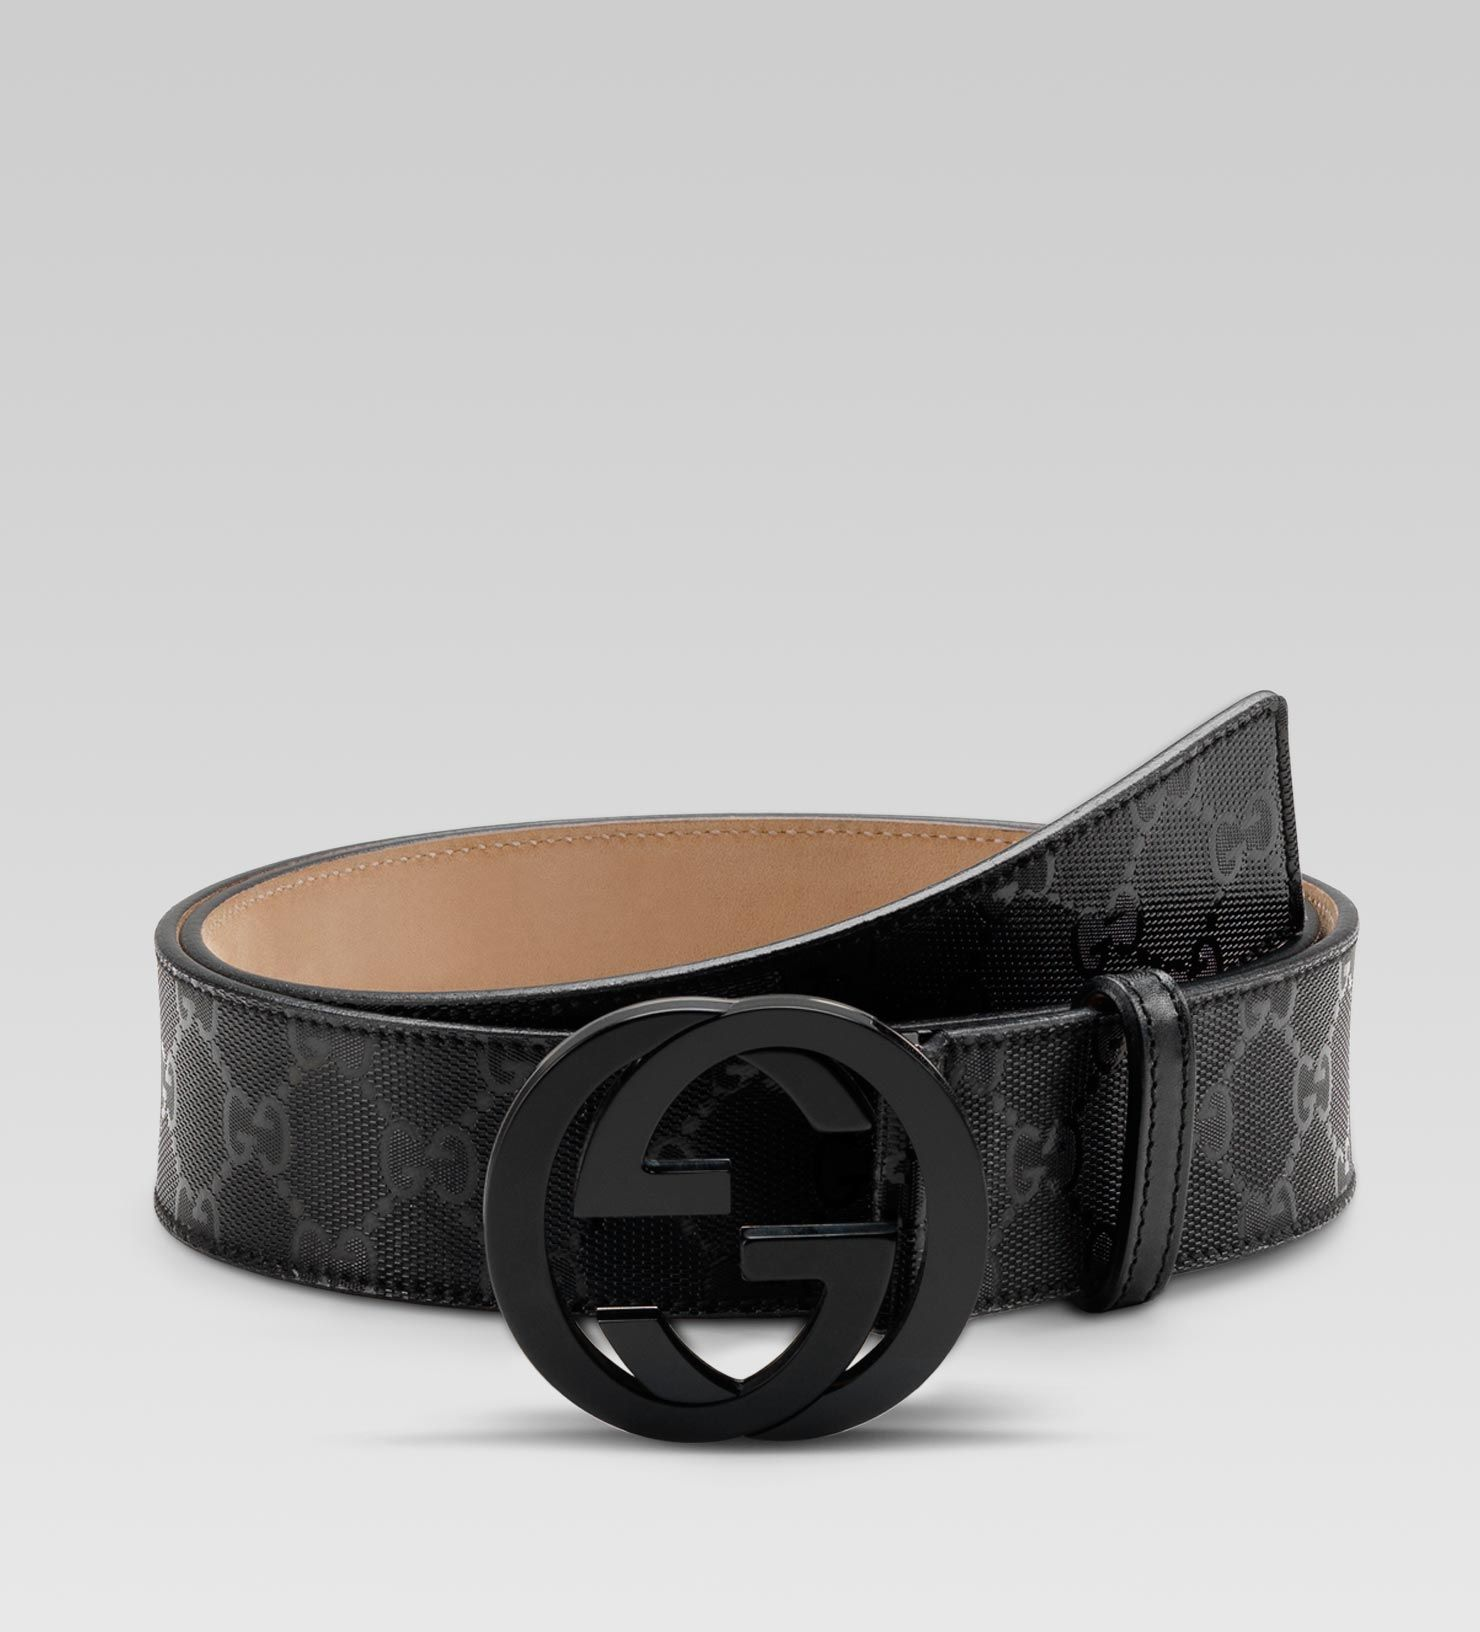 806a76e23 Gucci interlocking g belt black imprime | Threads/Swag in 2019 ...